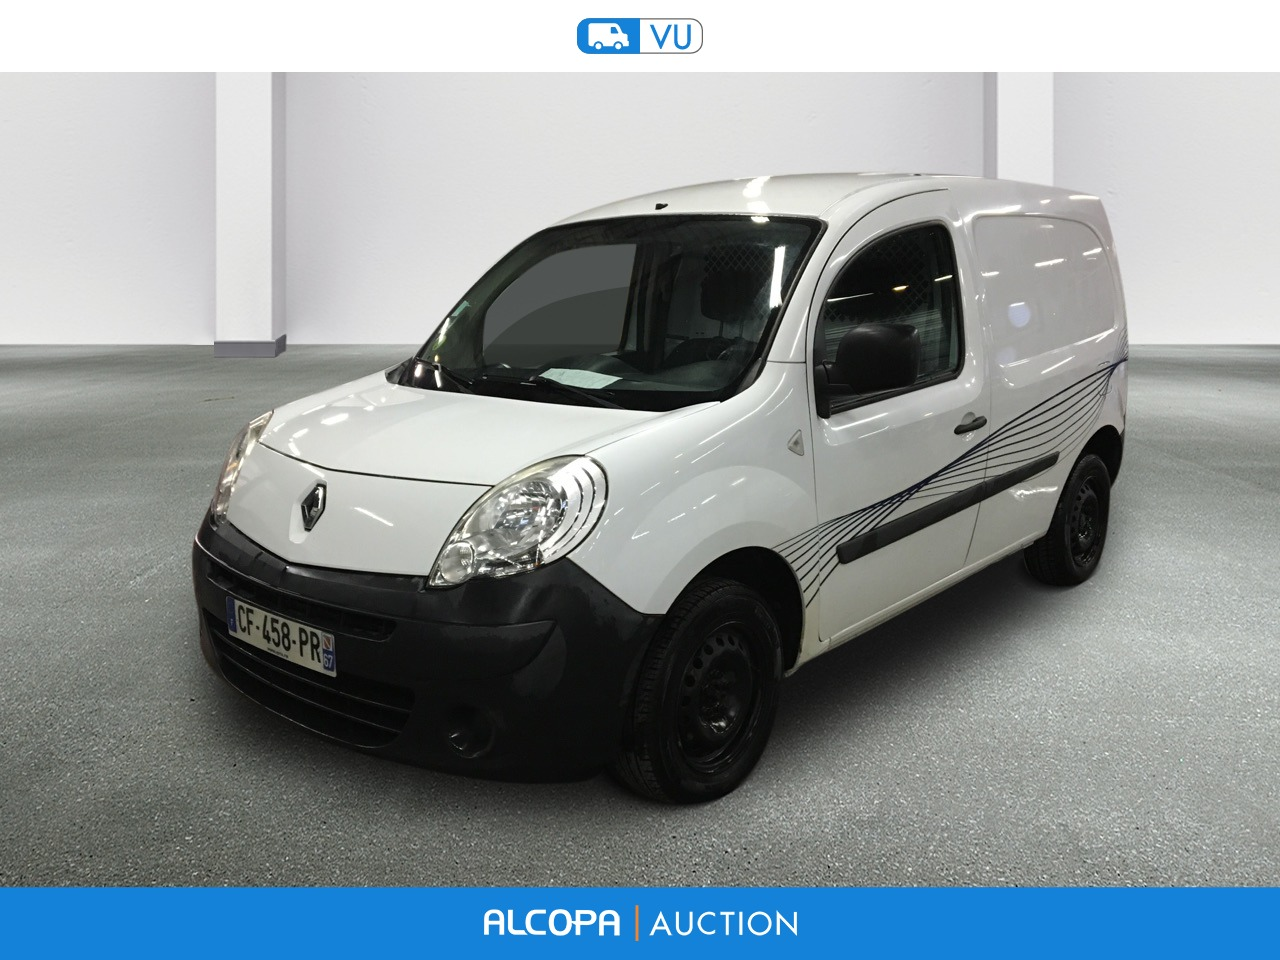 renault kangoo express kangoo express l0 1 5 dci 90 eco2 grand confort euro 5 alcopa auction. Black Bedroom Furniture Sets. Home Design Ideas